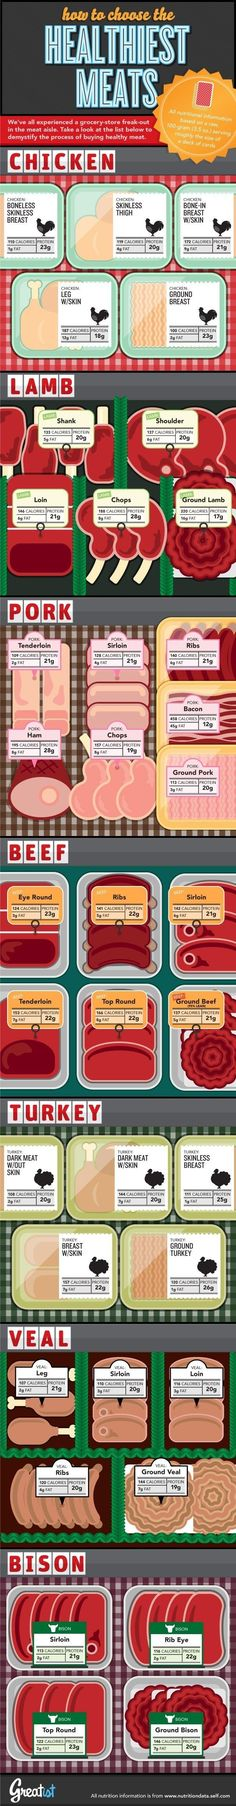 For figuring out which meat fits your diet: